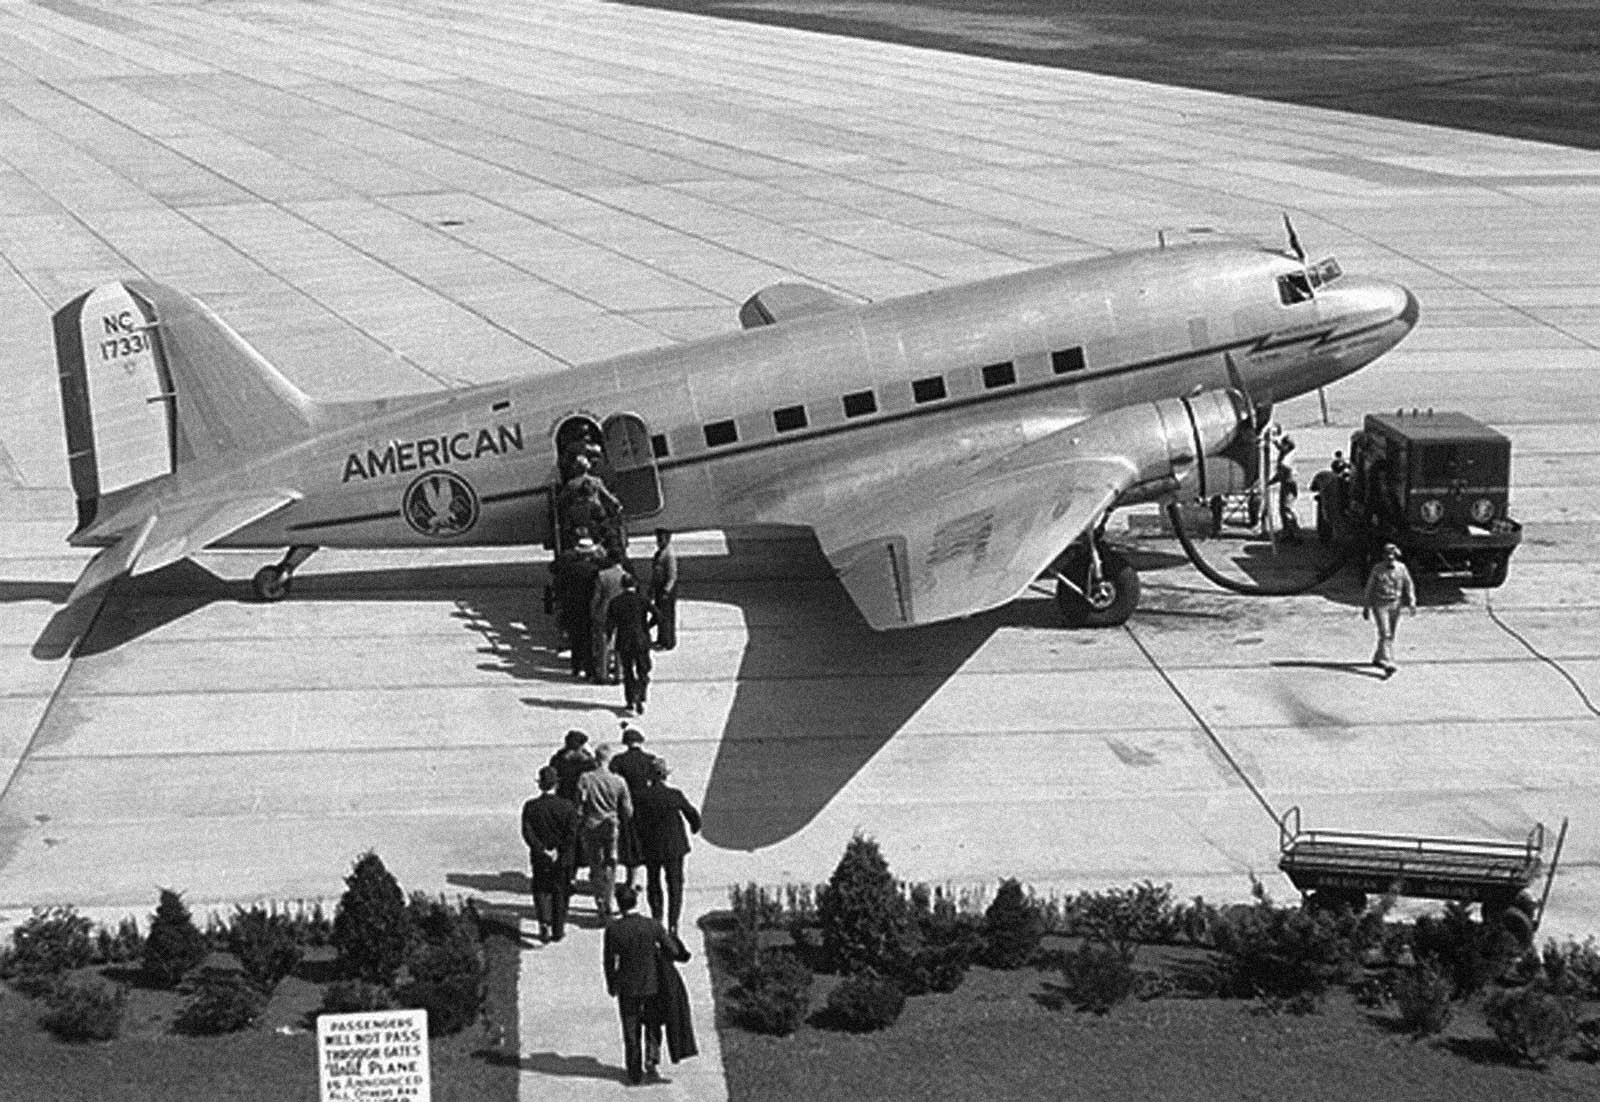 American Airlines DC3